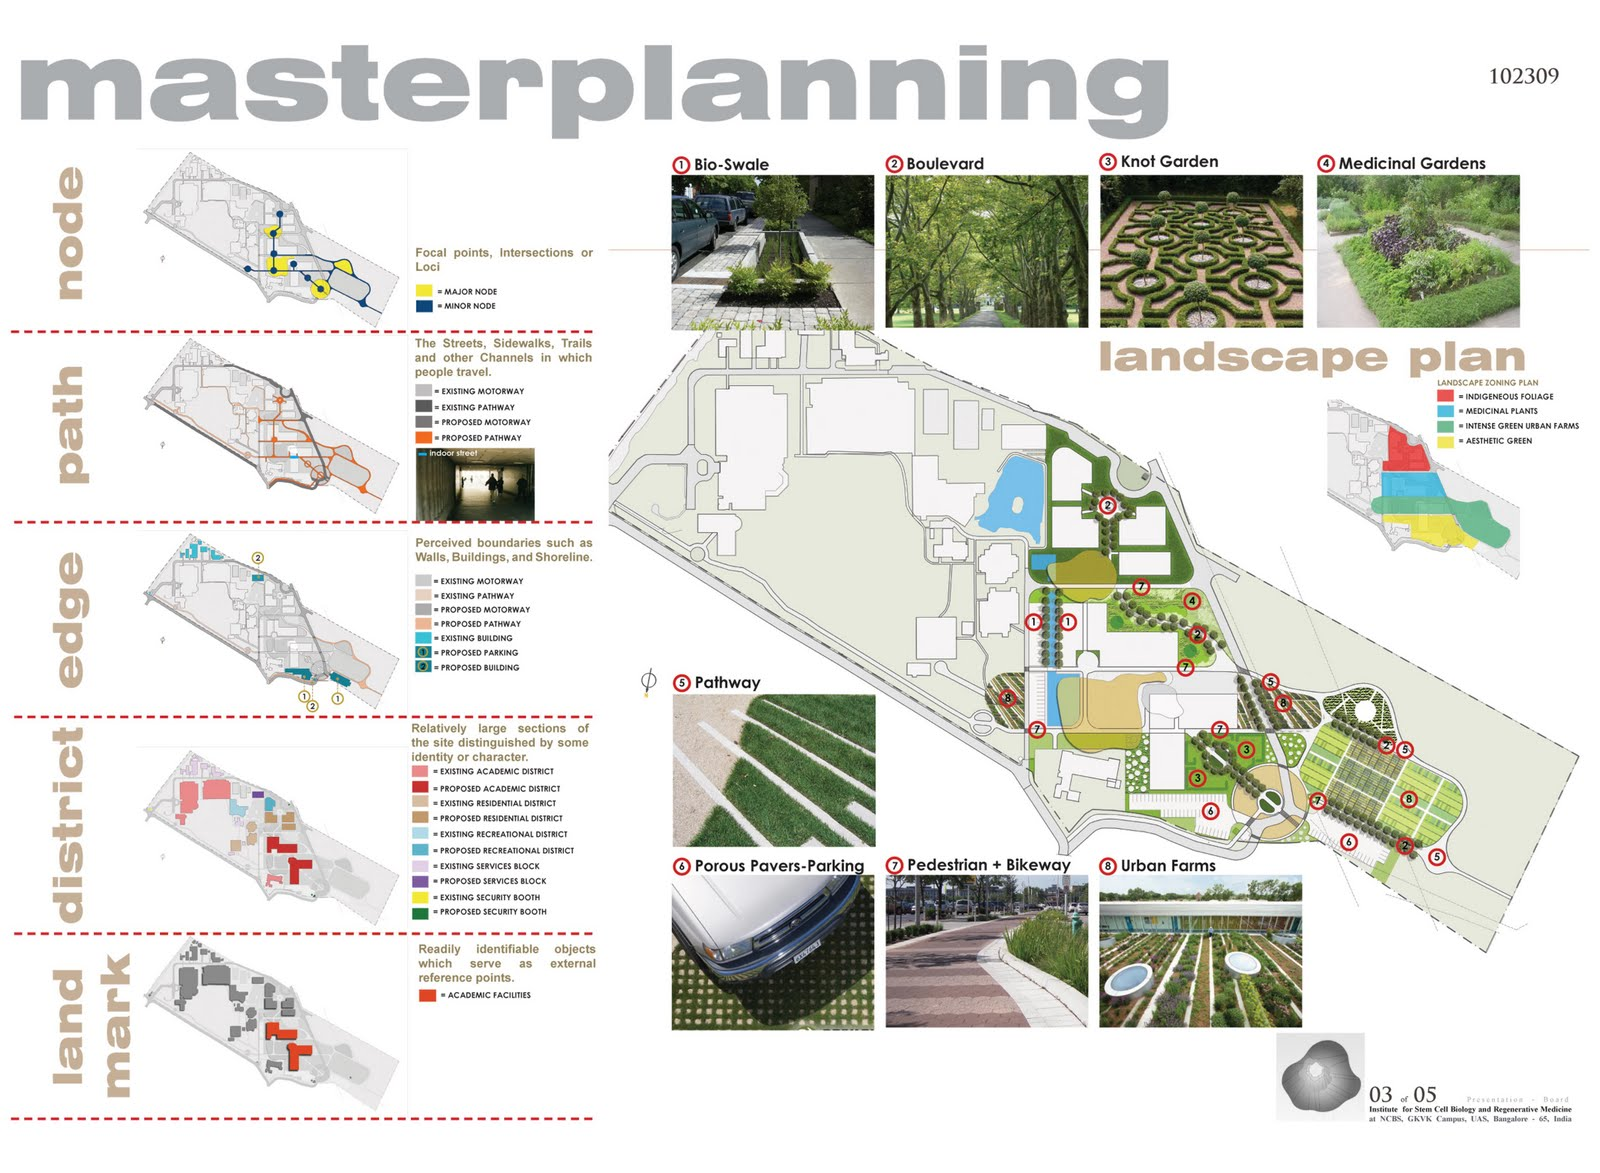 landscape architecture essay The undergraduate bachelor of landscape architecture program provides a diverse learning experience which strives for a balance among philosophy, theory, and application of concepts related to past, present, and future problem–solving in landscape architecture and allied environmental planning and design professions.